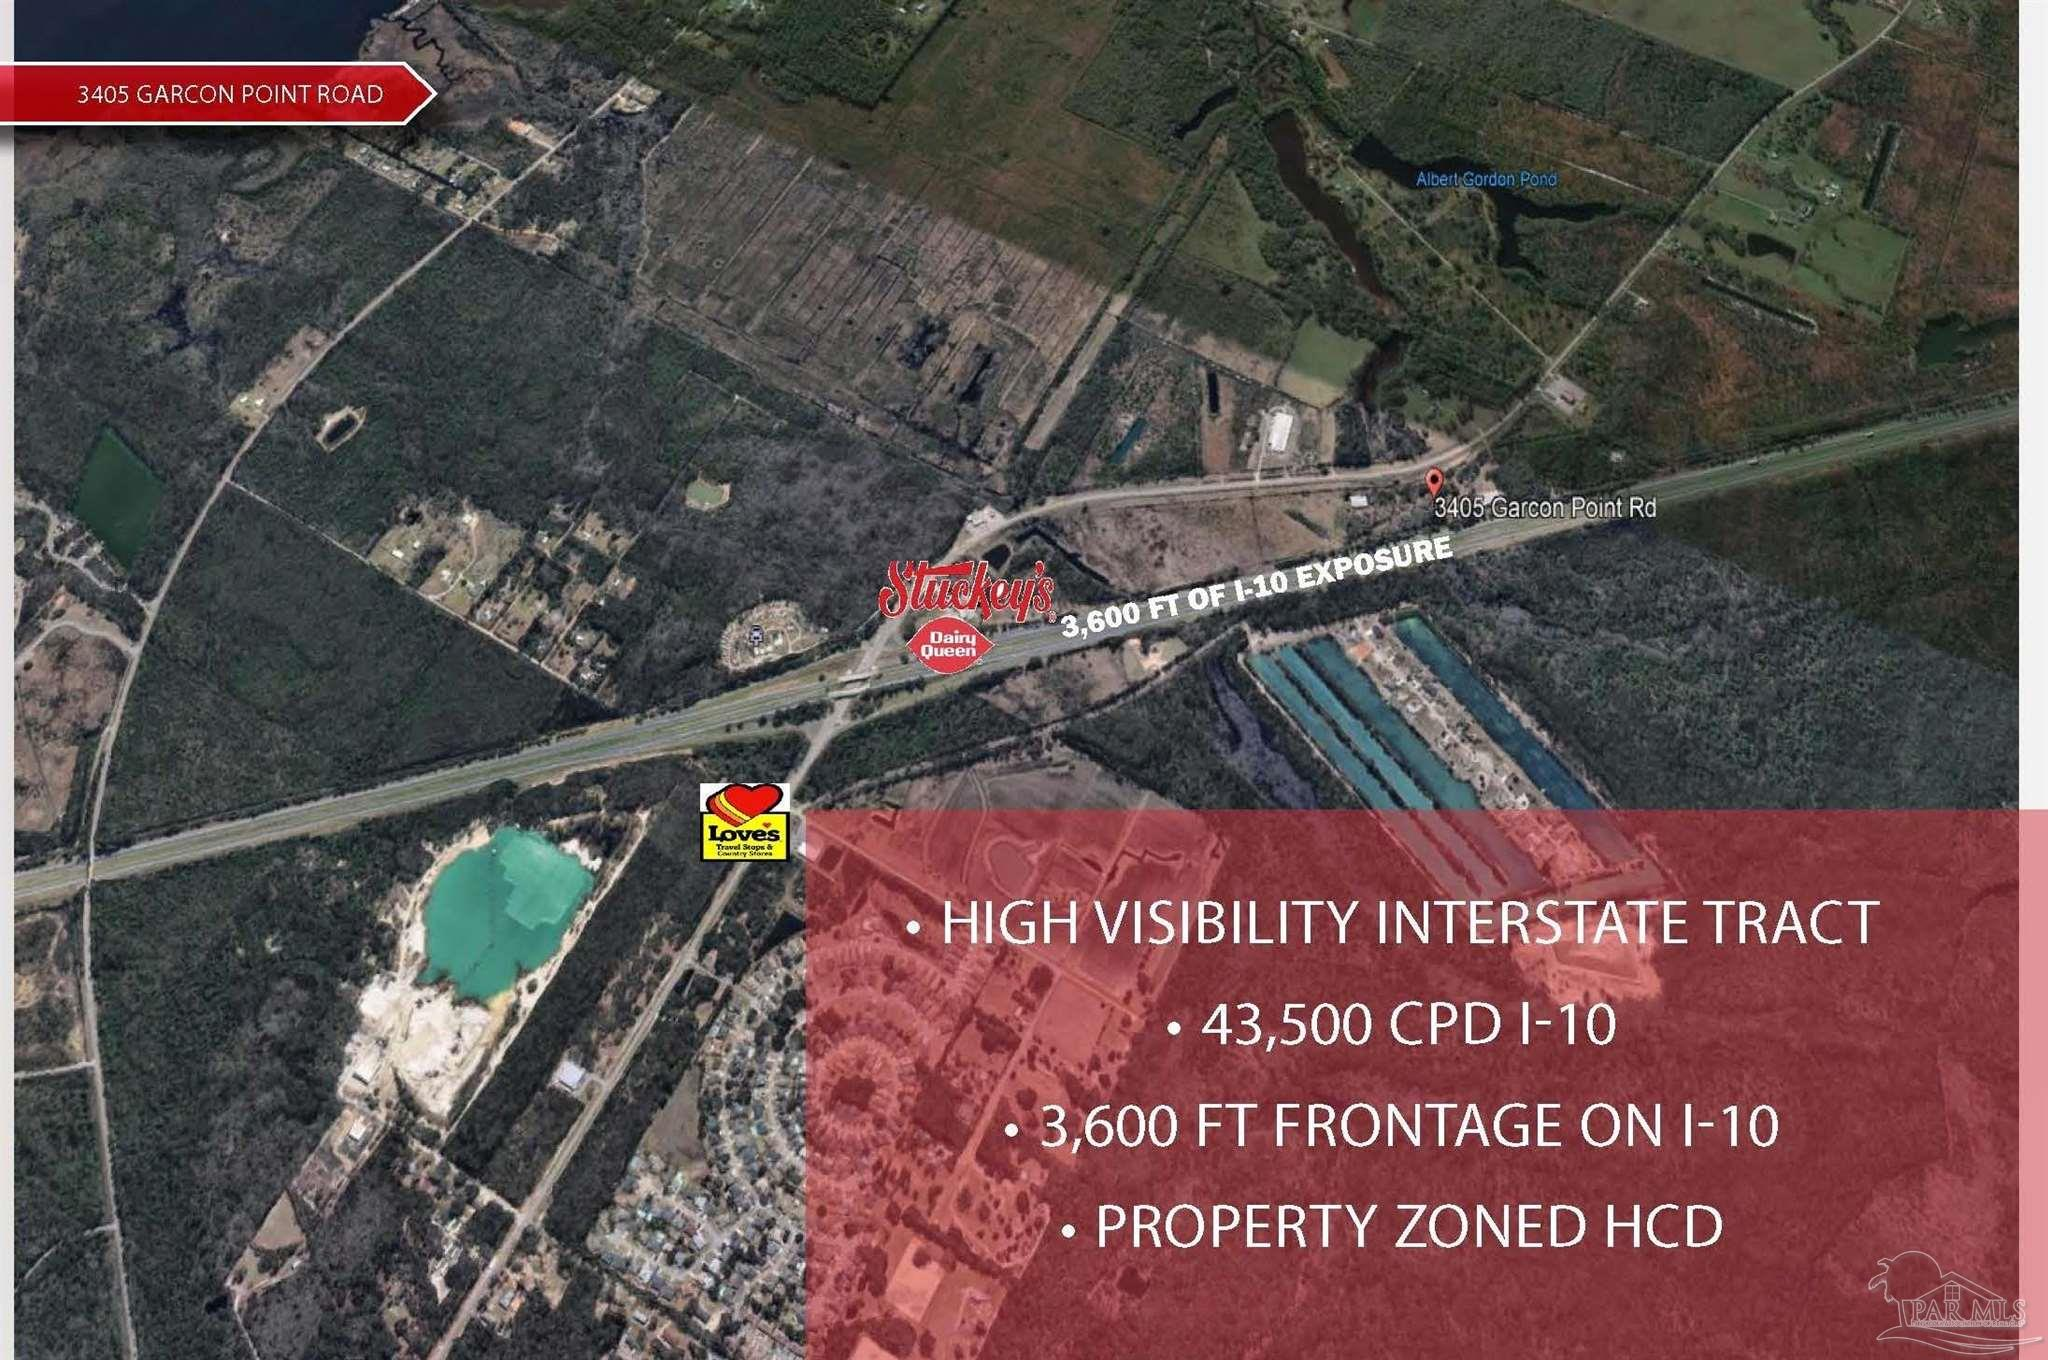 HCD ZONED ACREAGE on I-10.   This is a prime tract on Garcon Point Road and I-10. The property offers quick access to the City of Milton, FL, and Pensacola, FL with an incredible 3,600 FT of exposure along I-10.   The Northern boundary of the property adjoins Stuckeys at the Garcon Point Road / Baghdad Exit. A 12,000 SF Loves Travel Stop is under construction on the Northeast quadrant of this exit (opening Summer 2021)  The property is highly suitable for a Mixed Use Commercial Center, Hospitality, RV Park, and Industrial User.  The owner will consider subdividing.   The property contains two metal industrial buildings. One is 15,000 SF+/- with 20 foot +/- eave height, and a 12 +/- foot wide by 18 +/- foot high swinging door. The other building has 9,600 SF +/- with 15 +/- foot eave height,18 +/- foot wide swinging door by 12+/- feet high. Both buildings structures and roofs are in good shape.